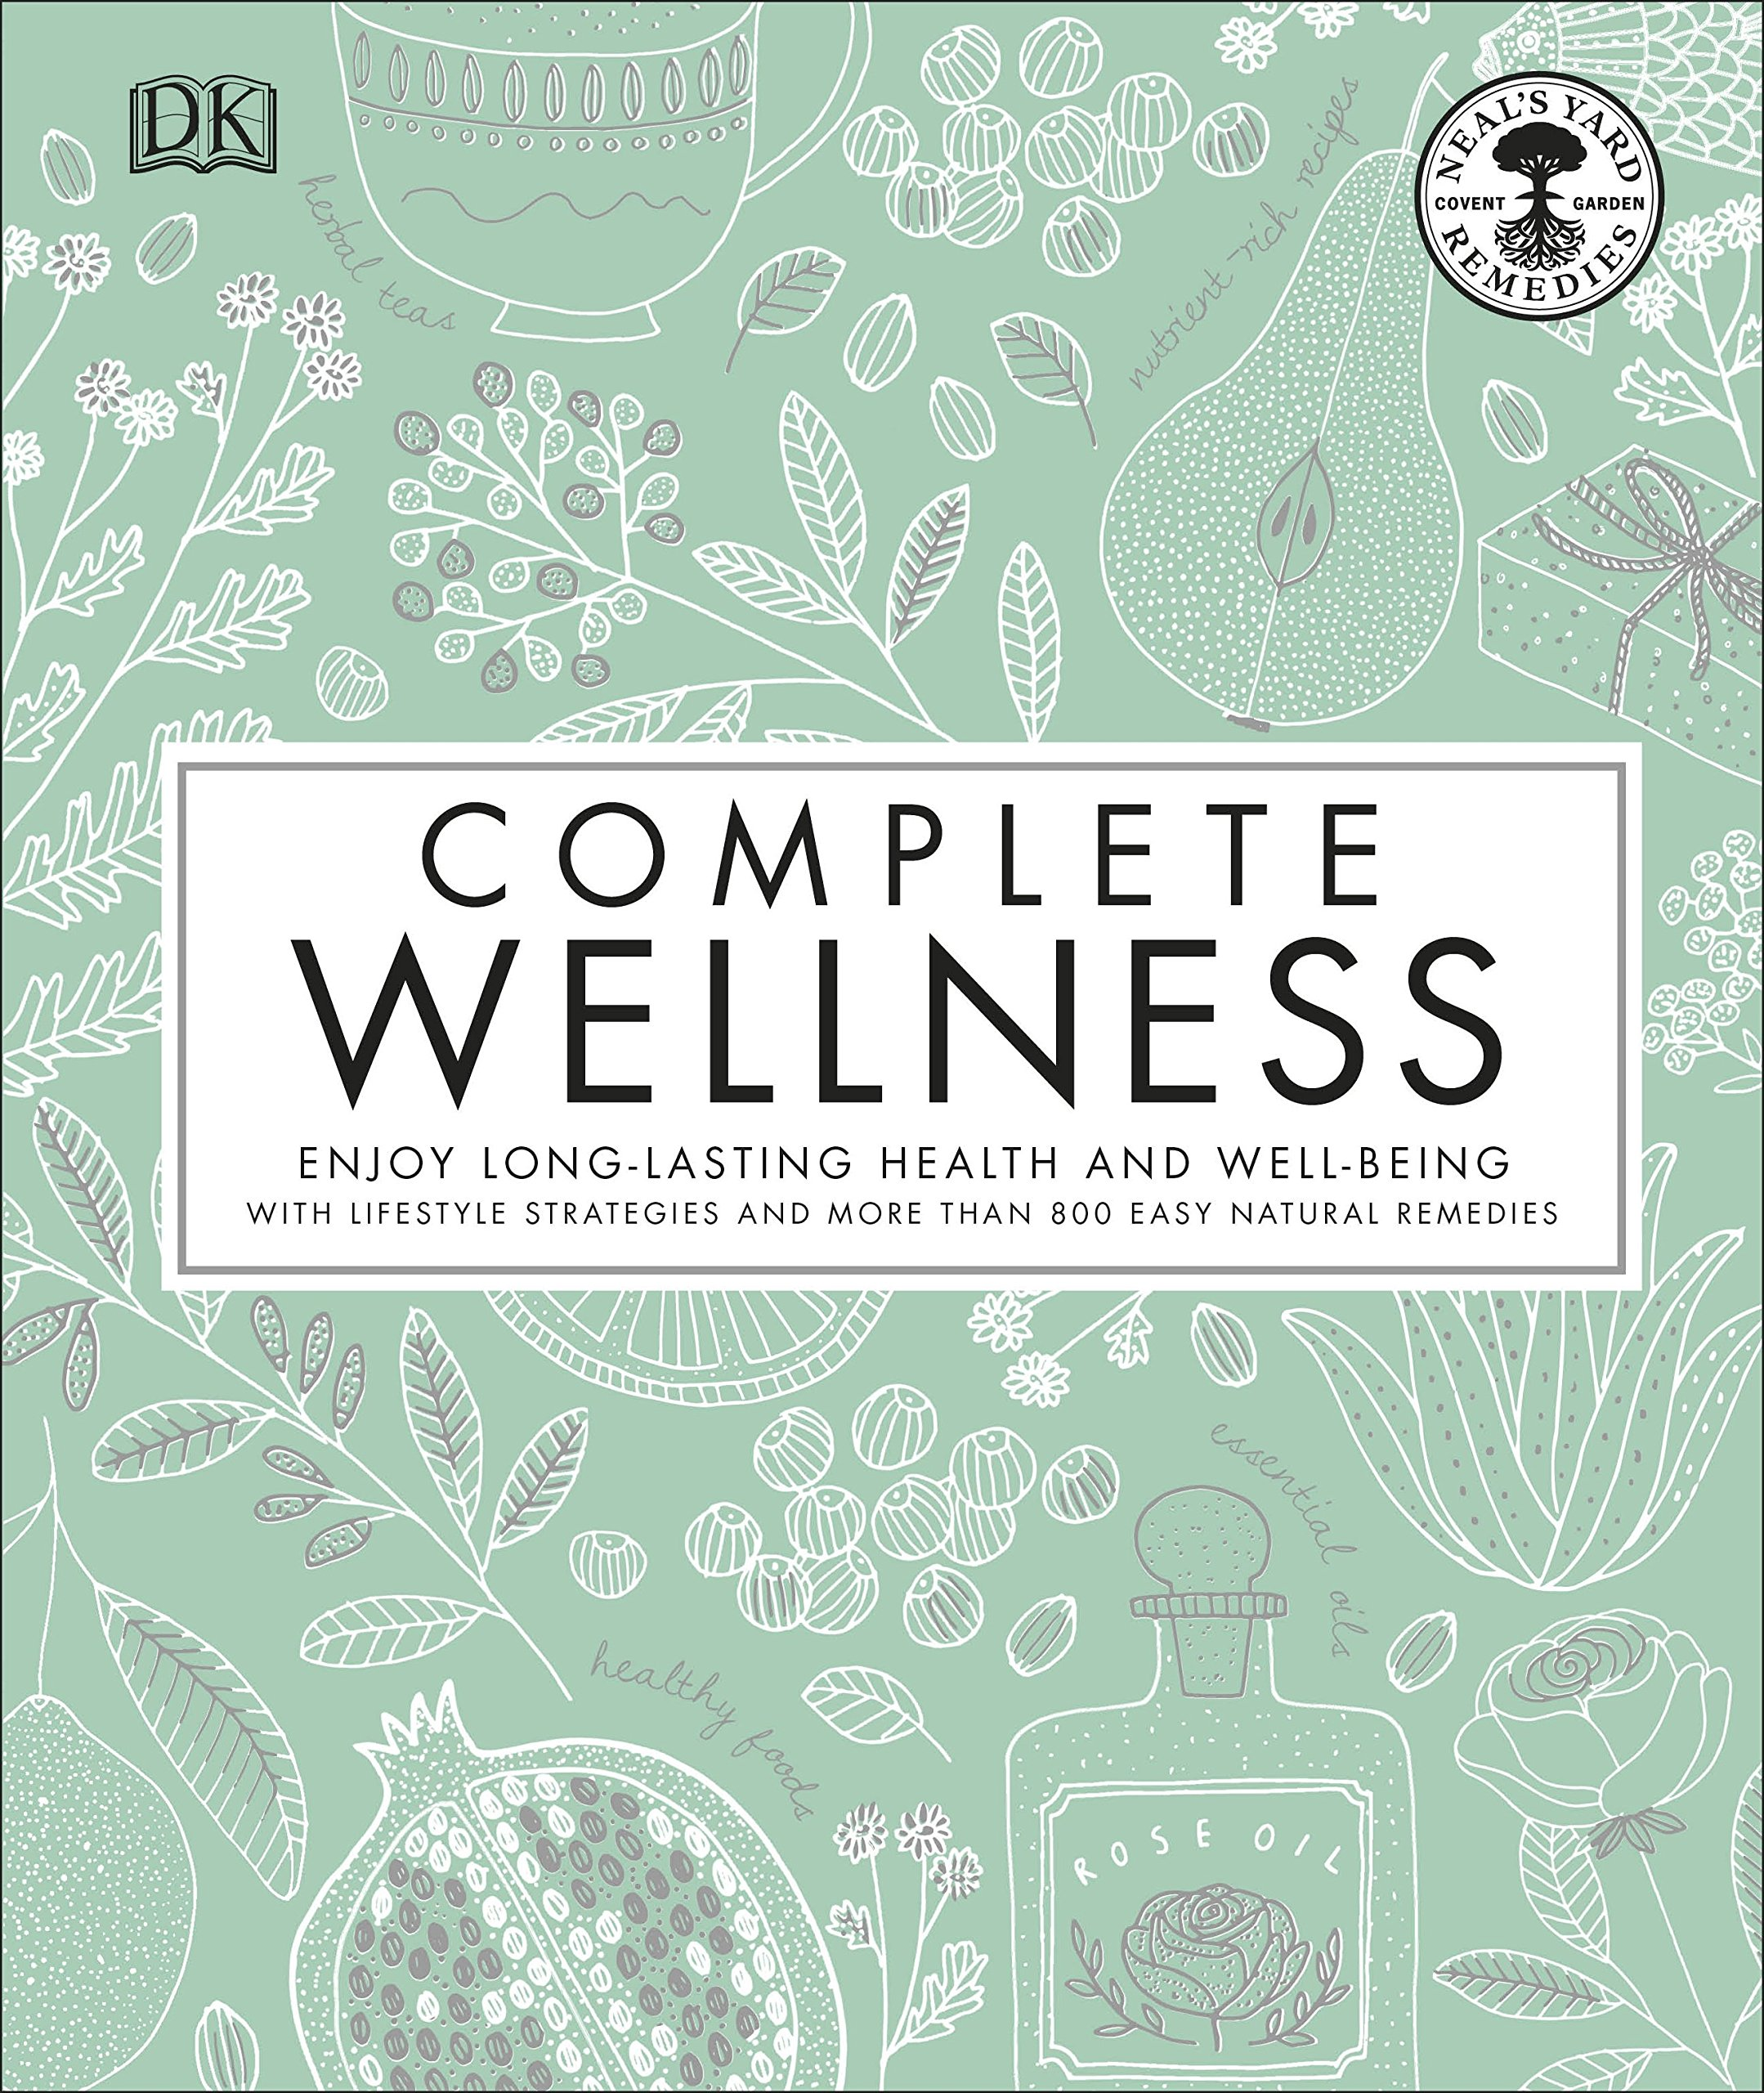 Top 7 Wellness Books to Read in 2020